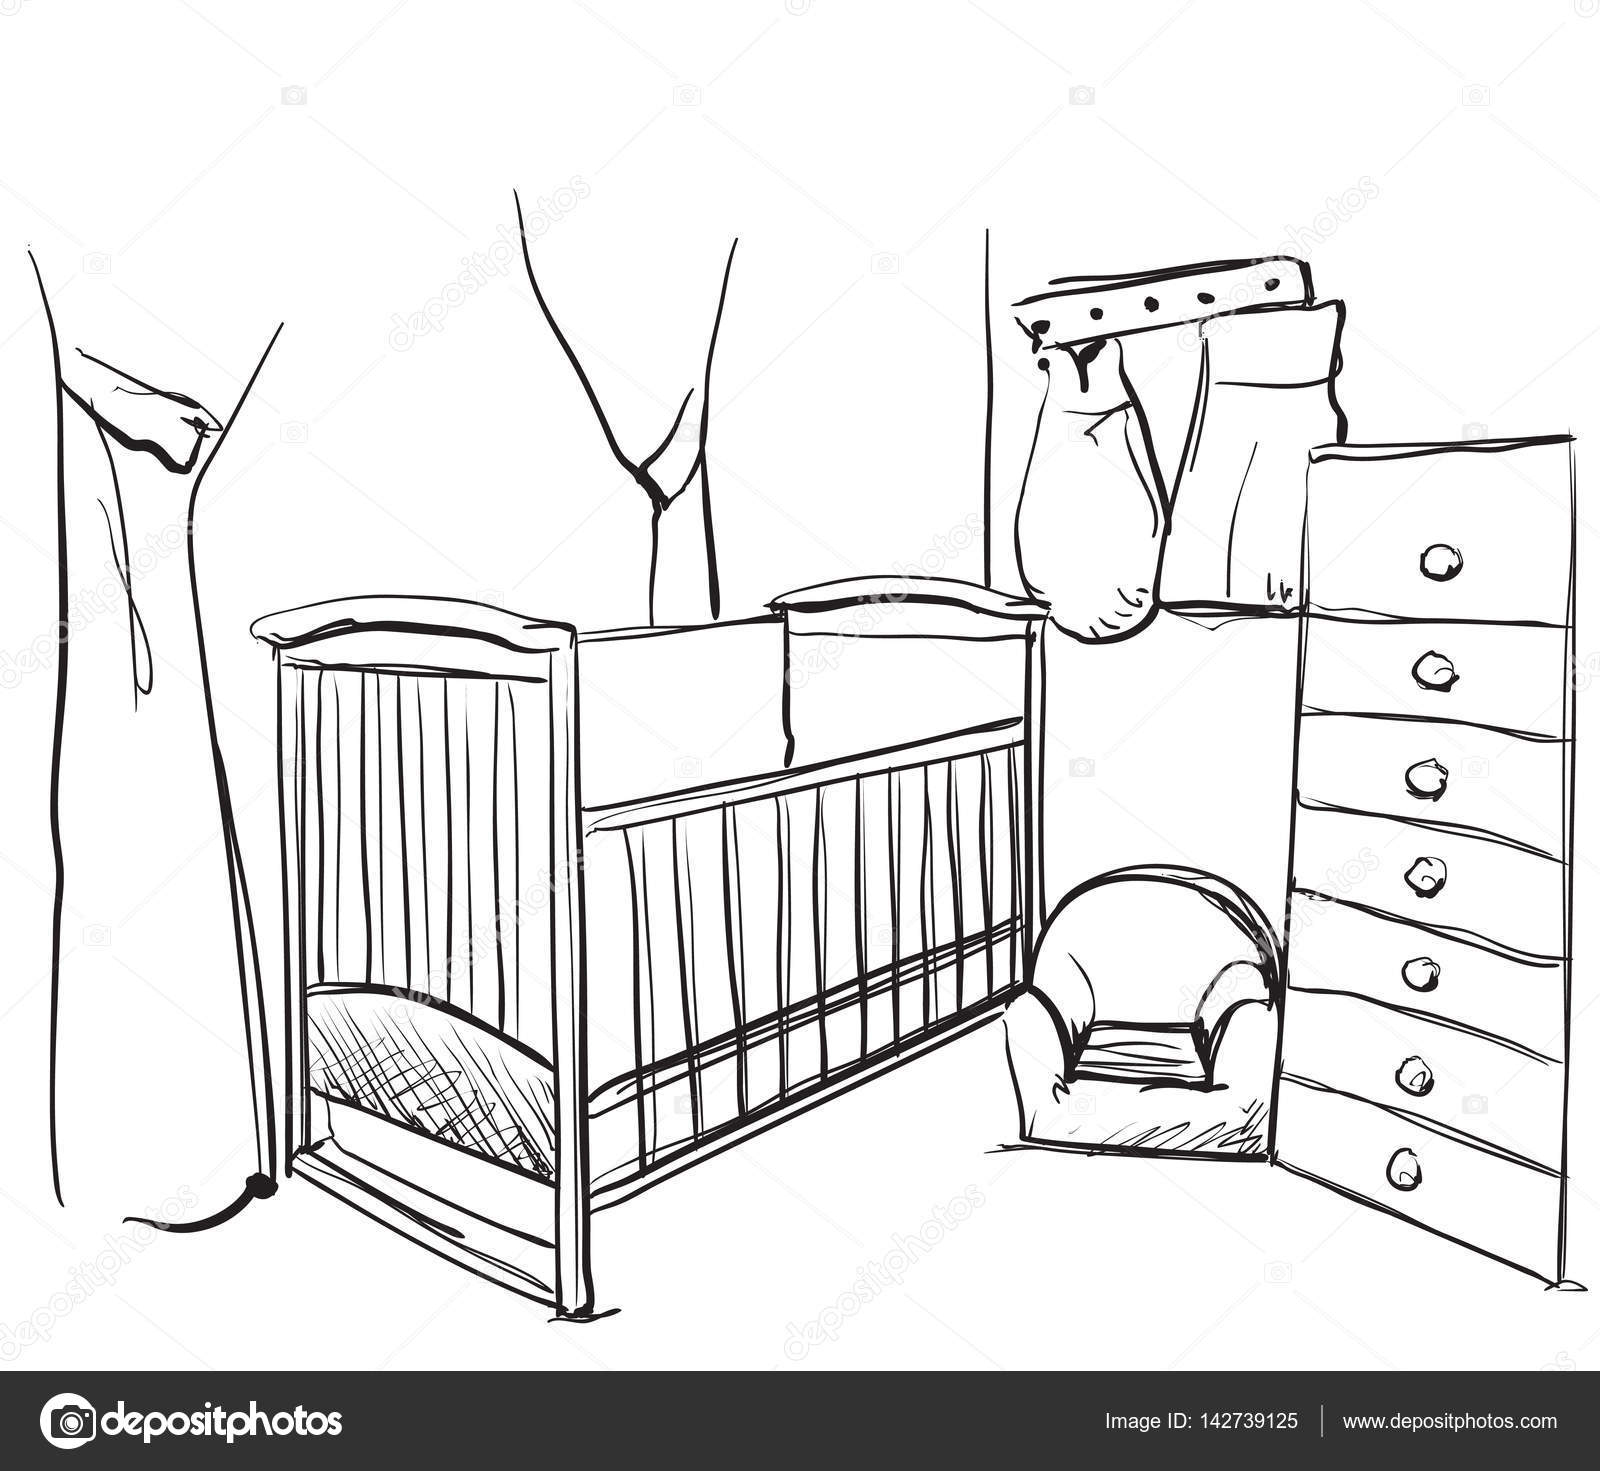 faire avec les enfants enfants pinterest telecharger photo de bureaux des enfant limoges. Black Bedroom Furniture Sets. Home Design Ideas